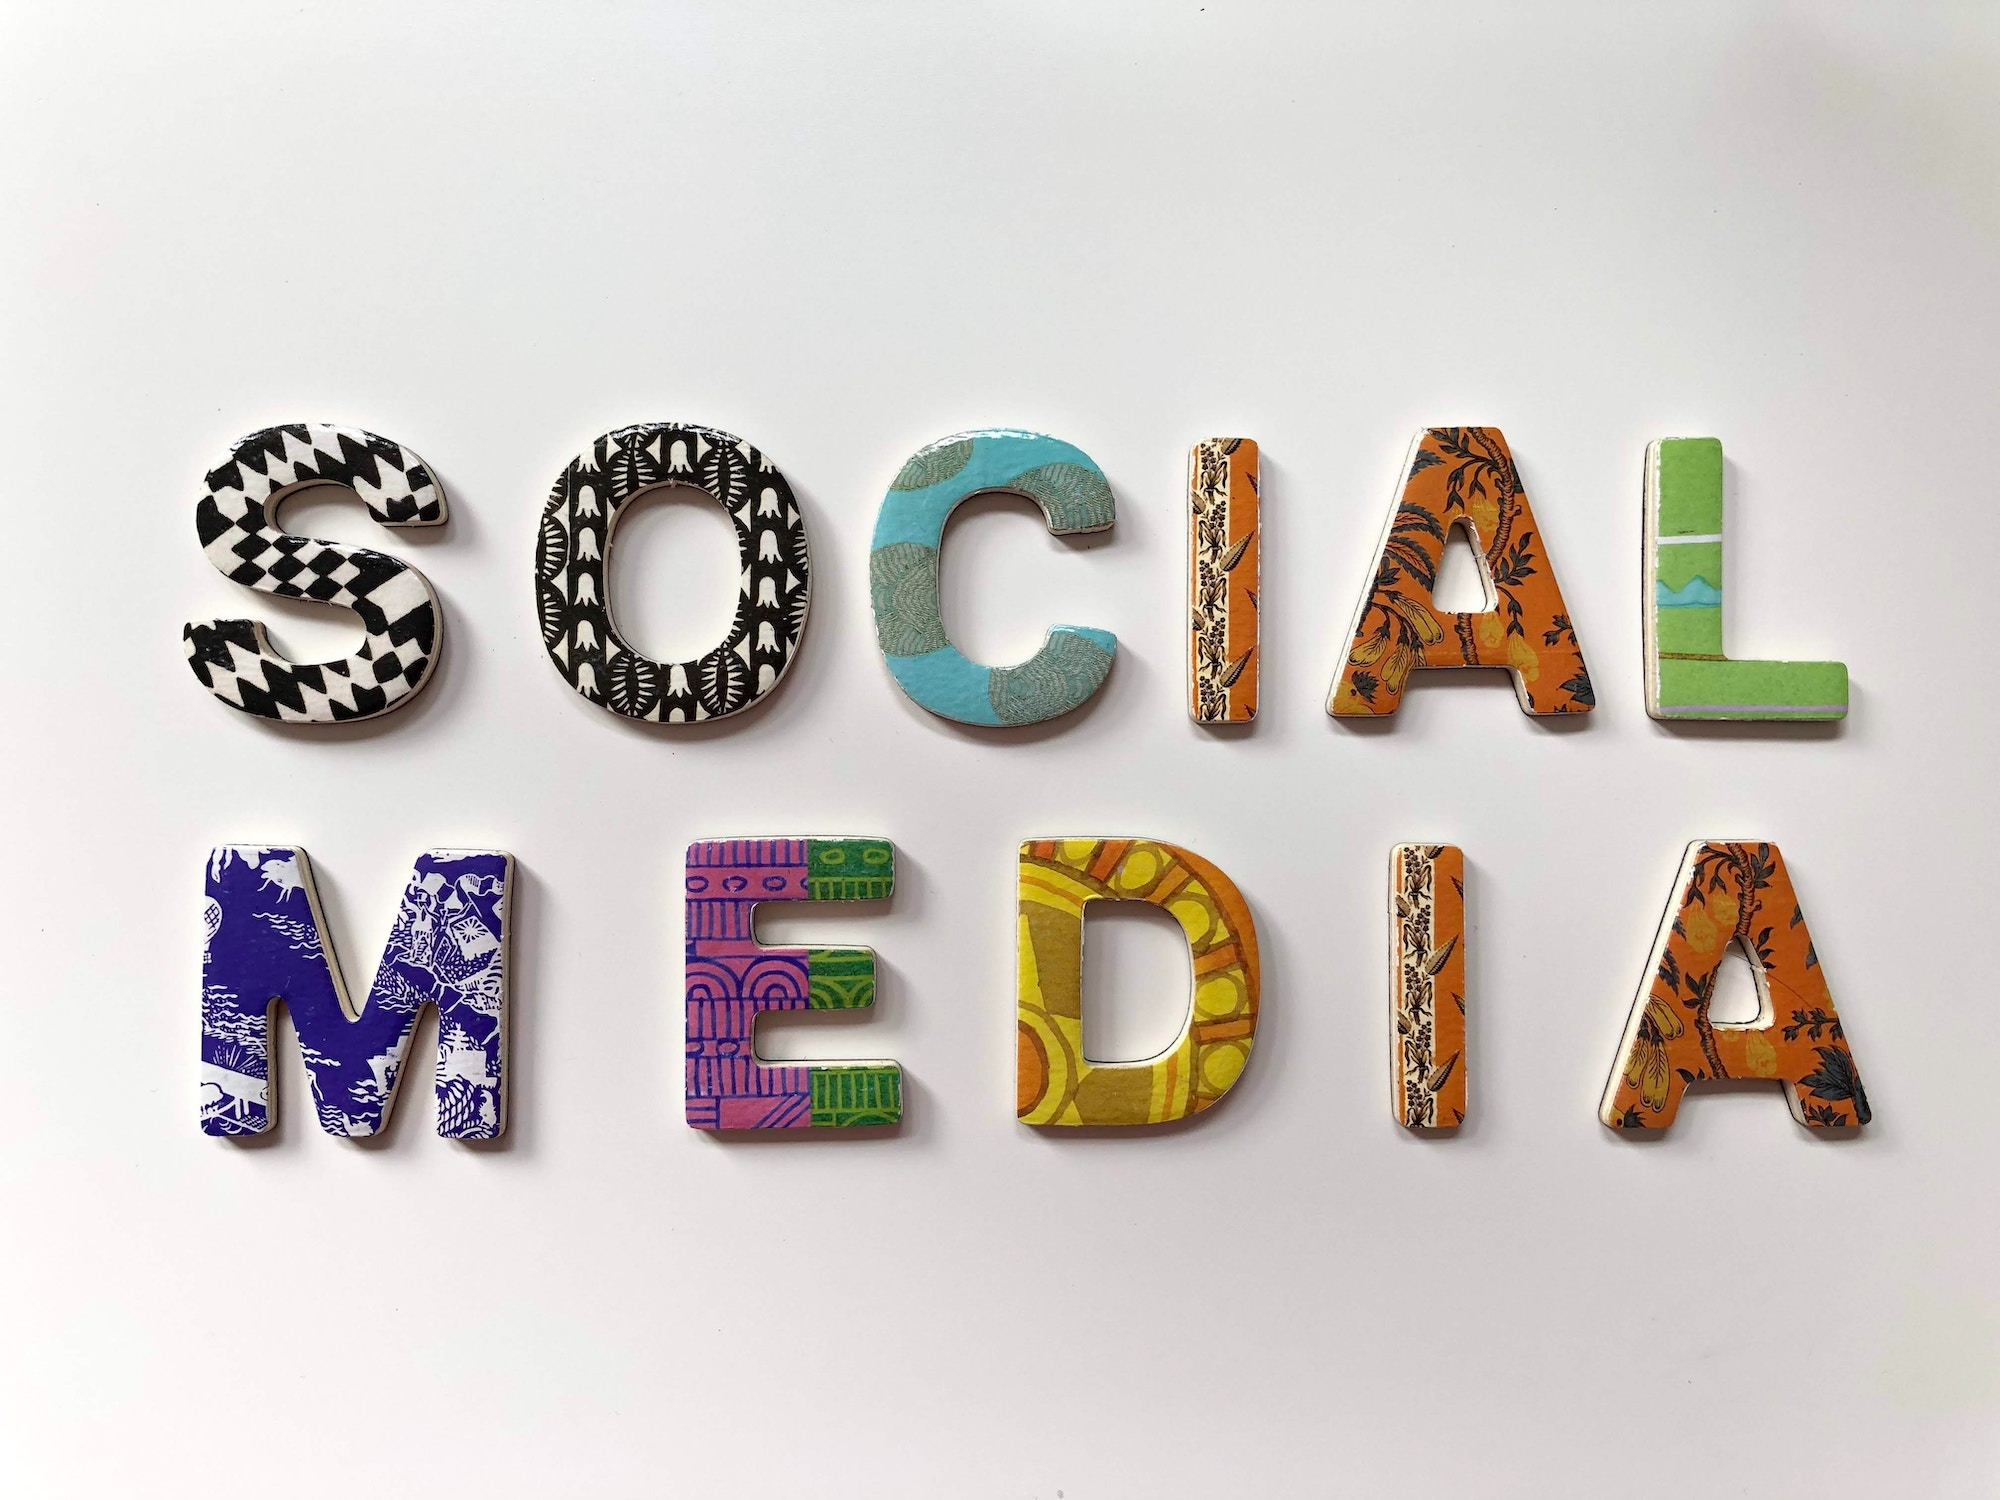 How To Use The Potential of Social Media To Effectively Market Your Online Store